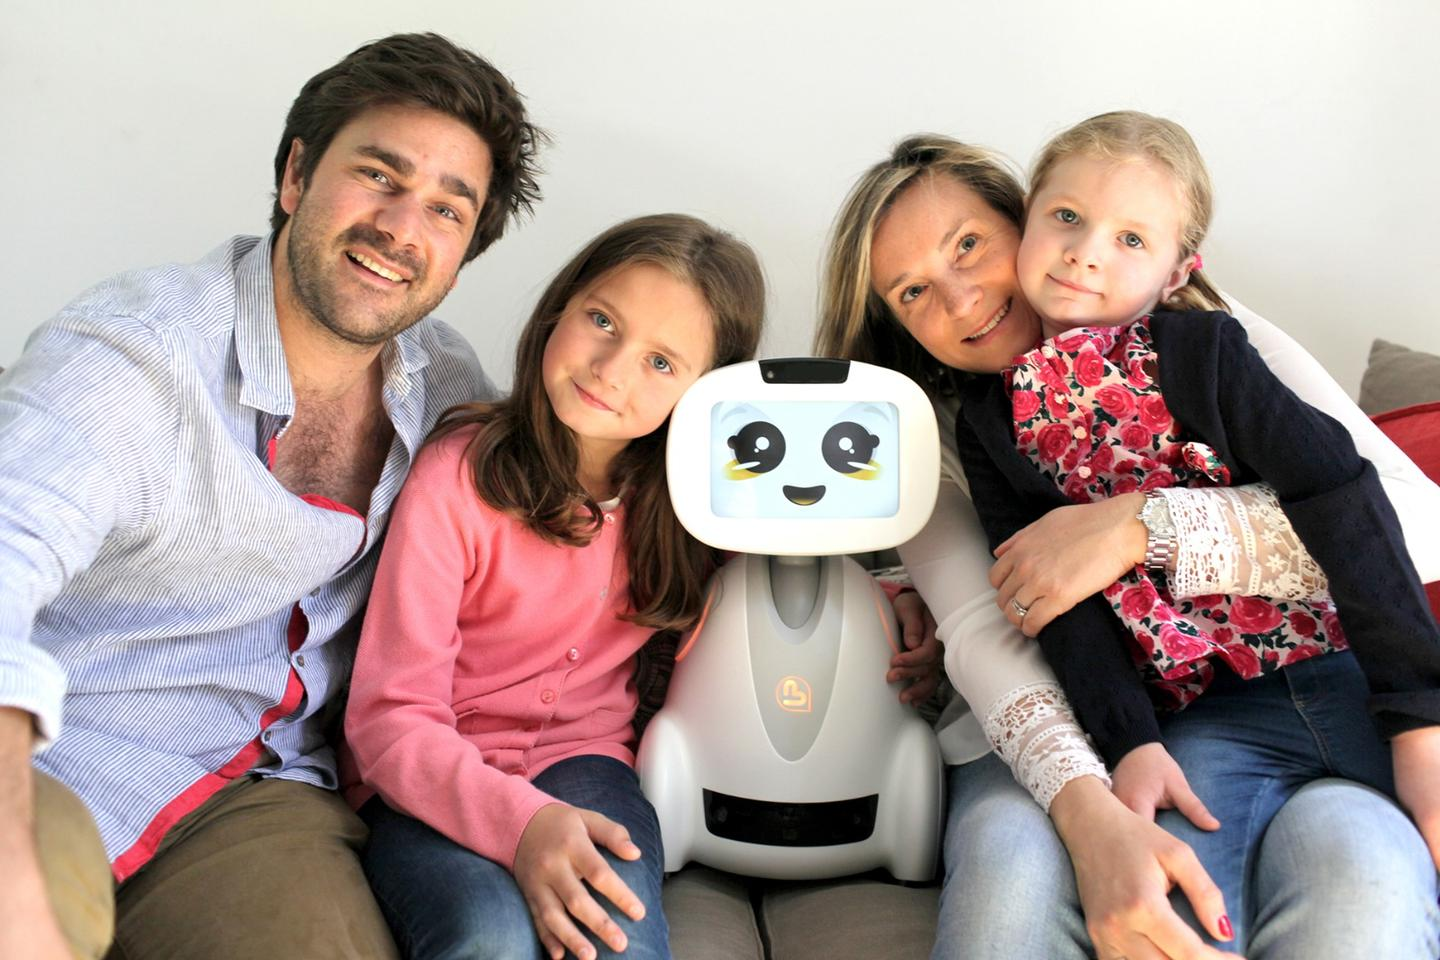 The Buddy robot features a camera, ultrasound, infra-red and thermal sensors, a range-finder sensor, a temperature sensor and ground detectors